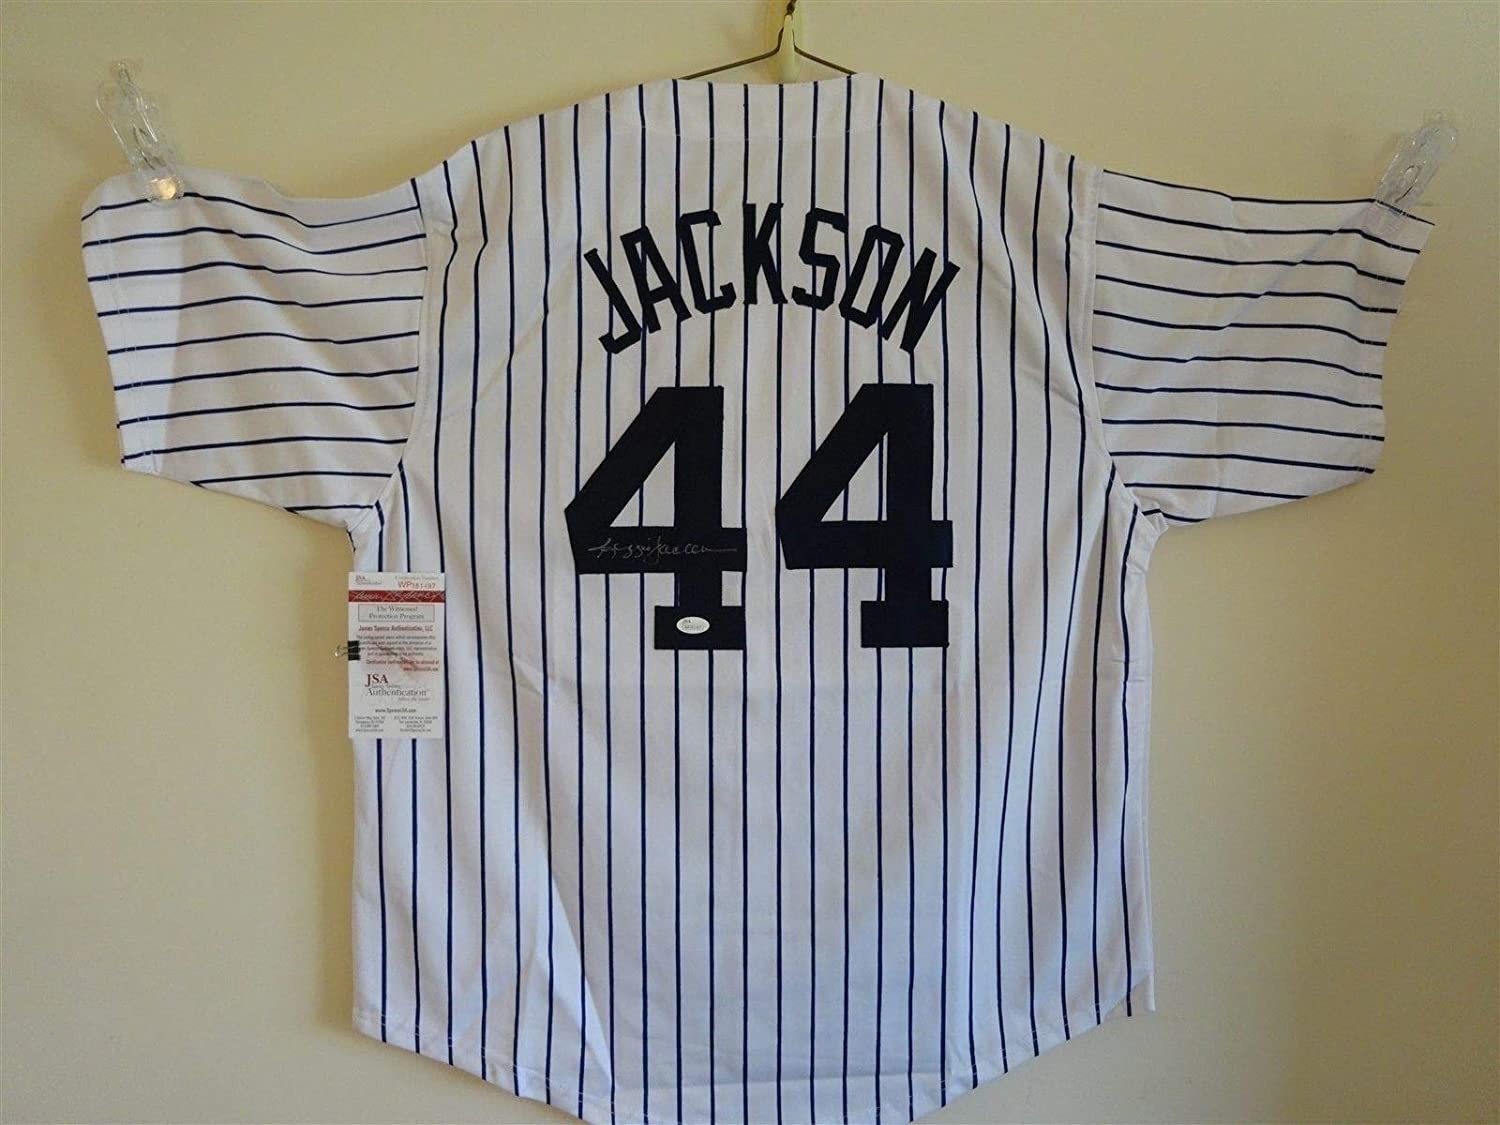 best website 86f96 89d66 REGGIE JACKSON SIGNED AUTO NEW YORK YANKEES PINSTRIPE JERSEY ...